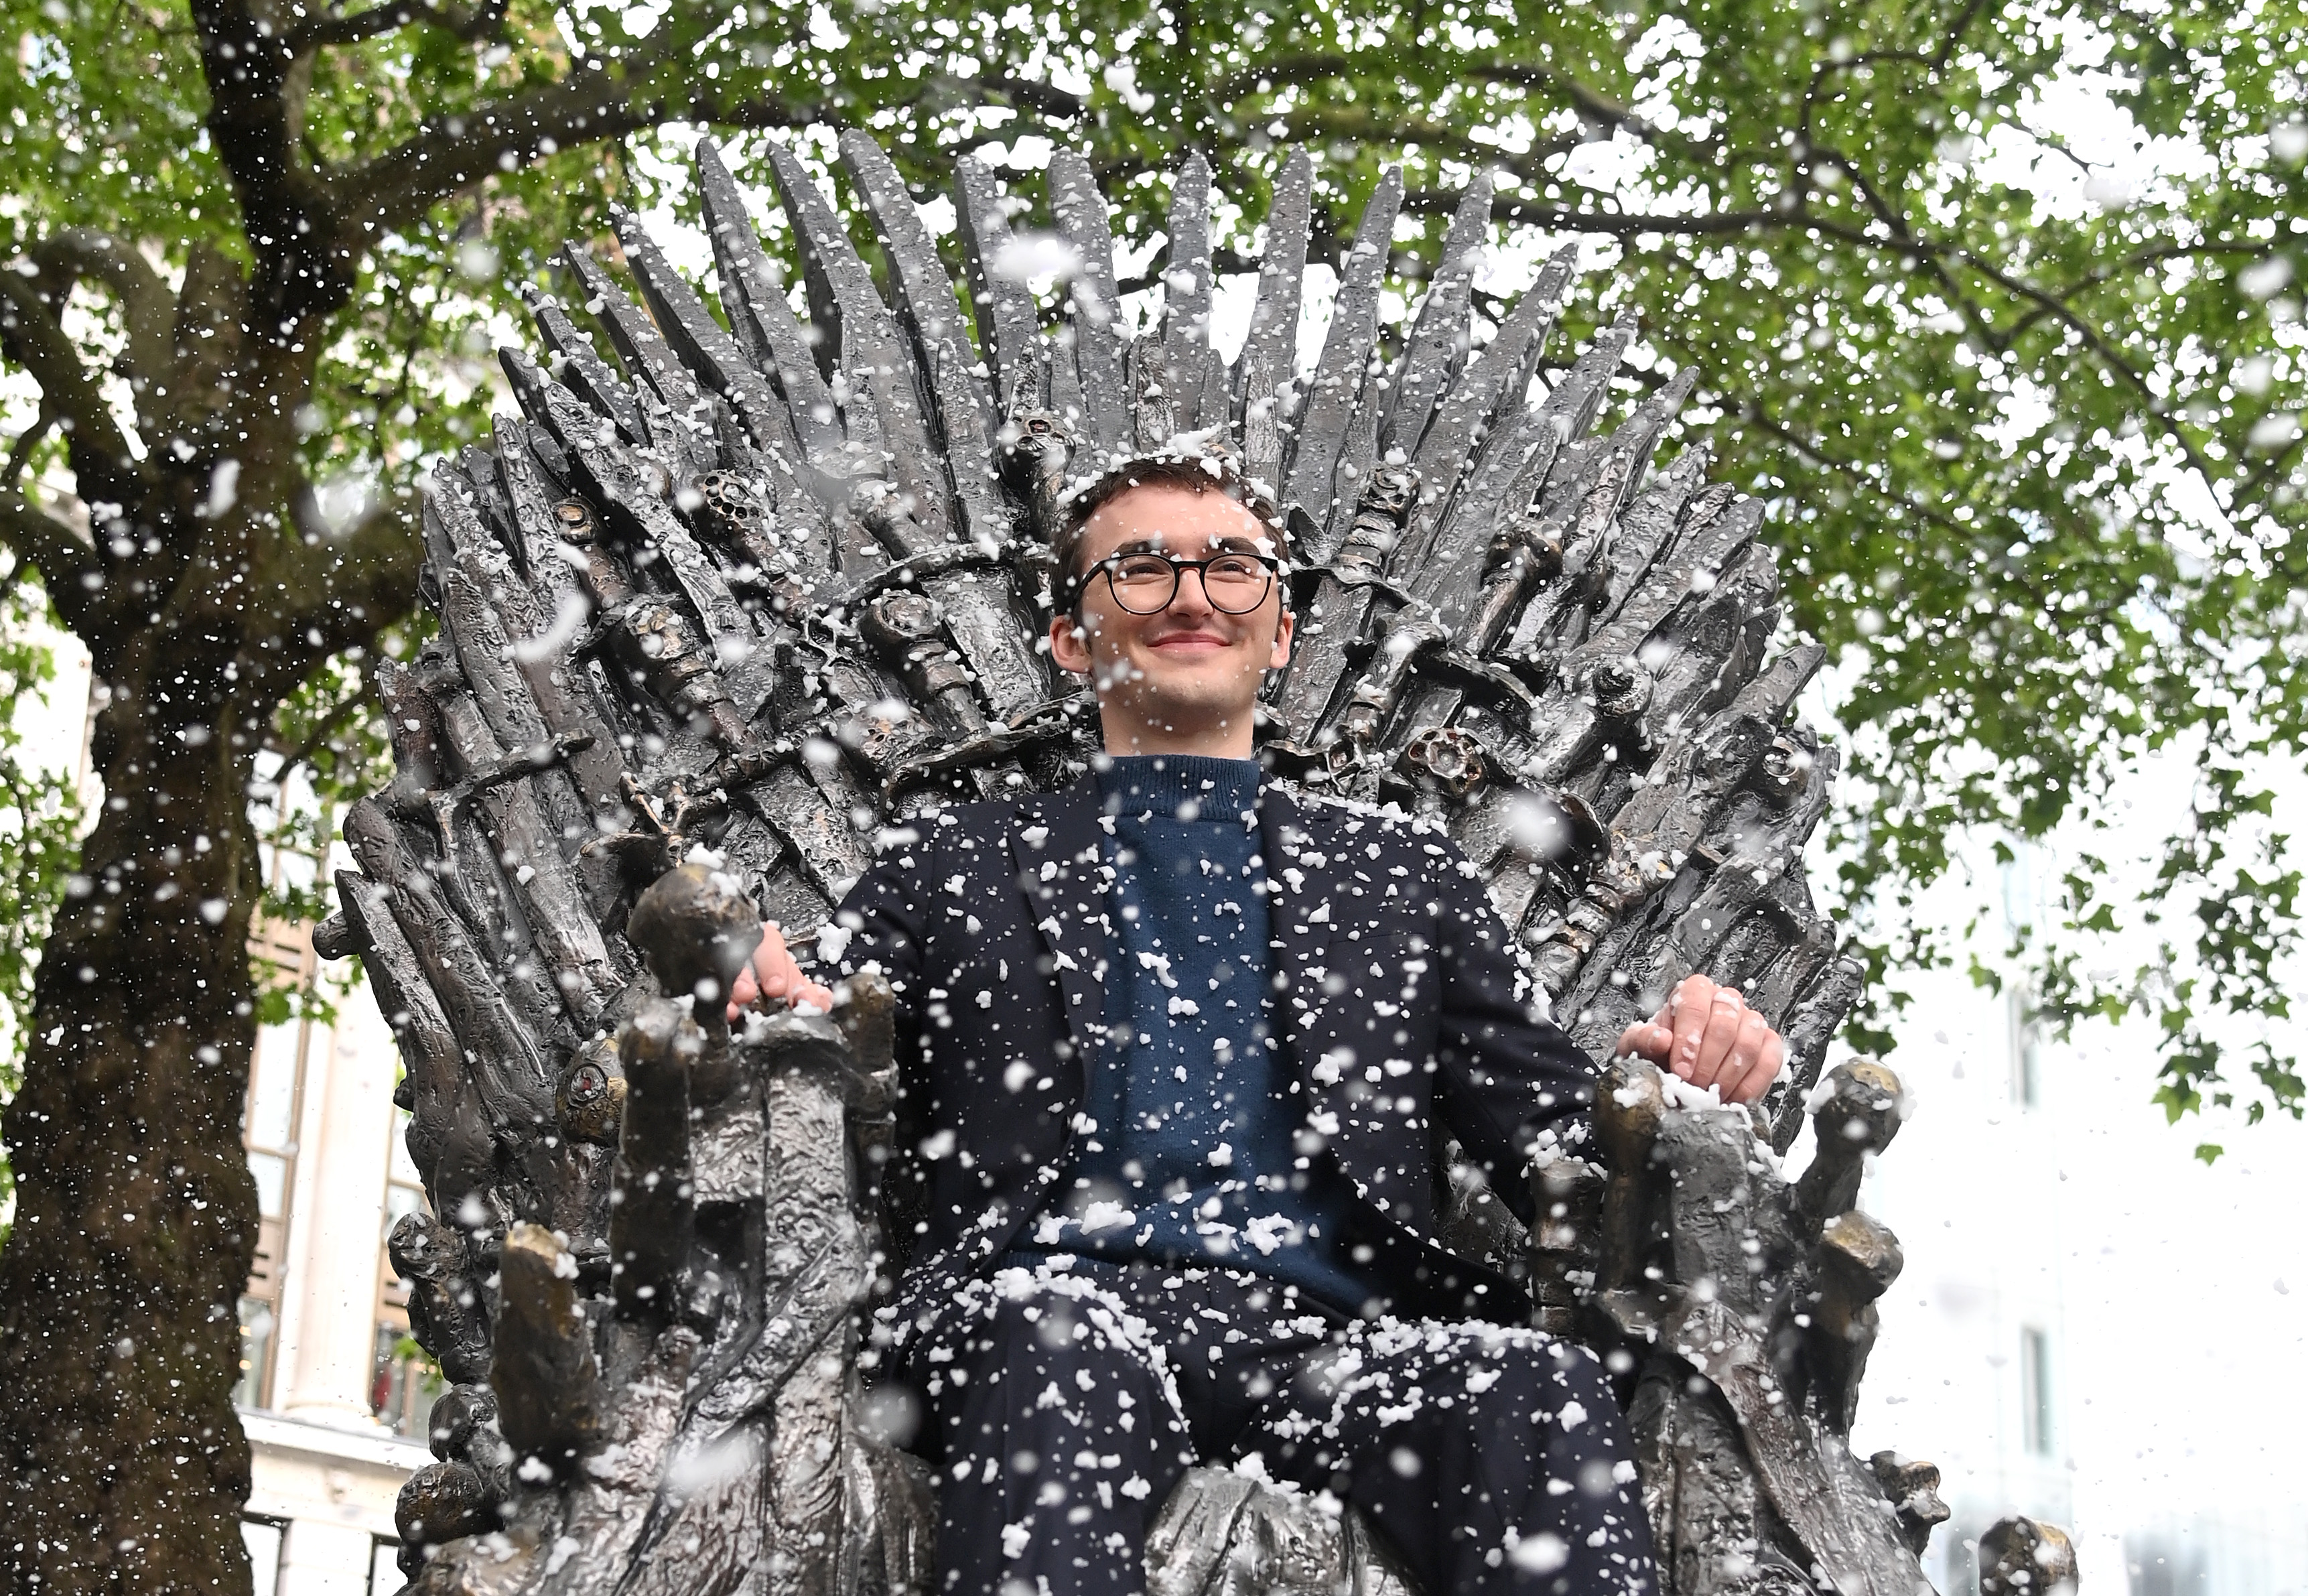 """<p>LONDON, ENGLAND - JUNE 22:  Isaac Hempstead Wright attends the Game Of Thrones Iron Statue unveiling in Leicester Square on June 22, 2021 in London, England. The statue marks the tenth anniversary of Game of Thrones and is the 10th statue unveiled as part of Leicester Square's """"Scenes in the Square"""". (Photo by Karwai Tang/WireImage)</p>"""